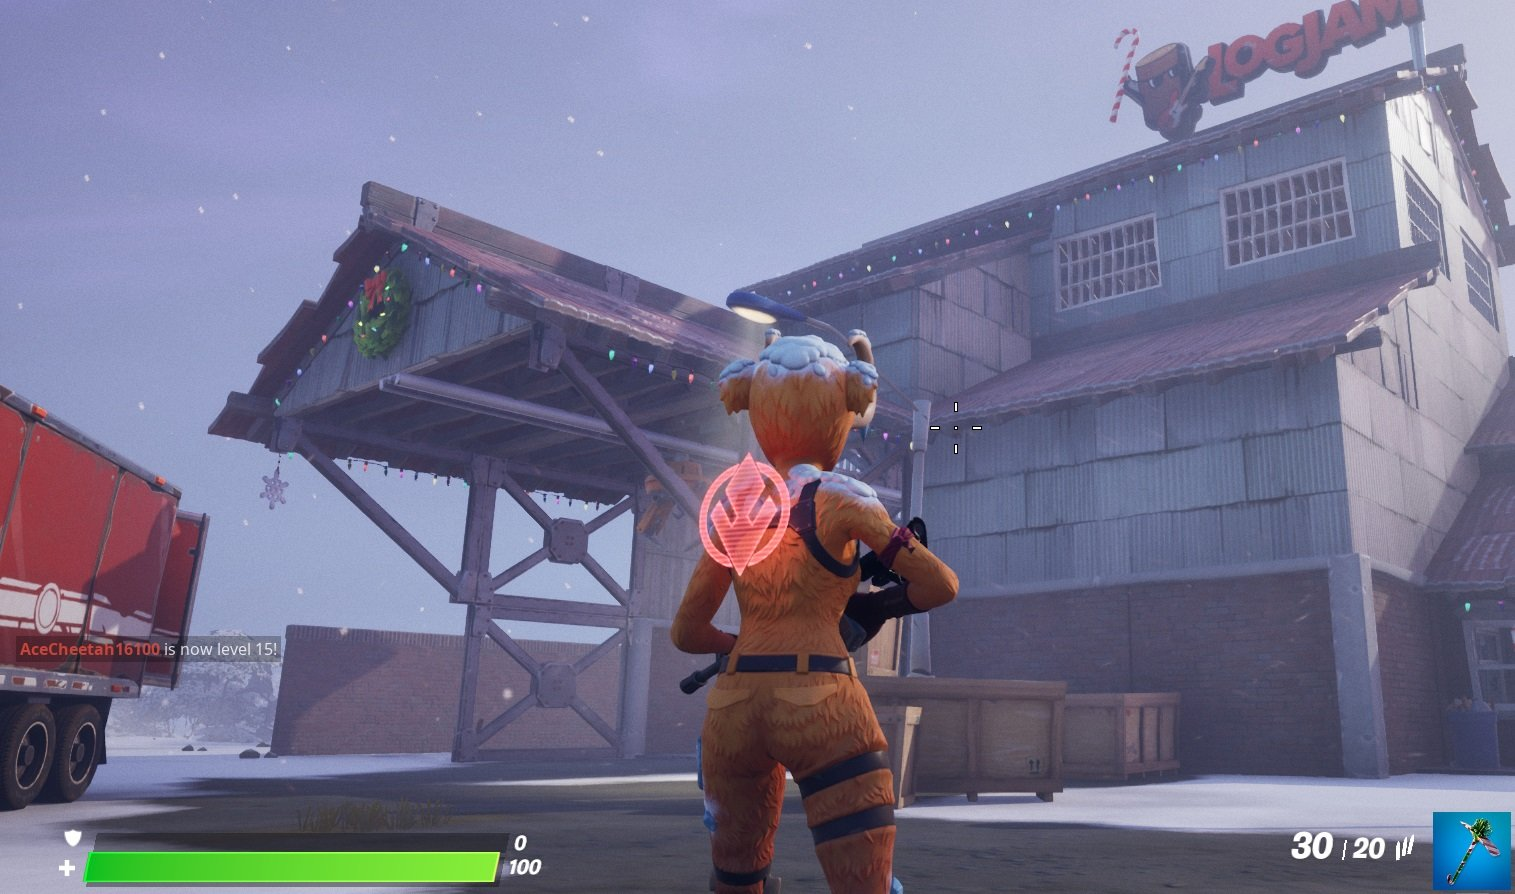 When you approach The Workshop, your challenge progress should update automatically in Fortnite.